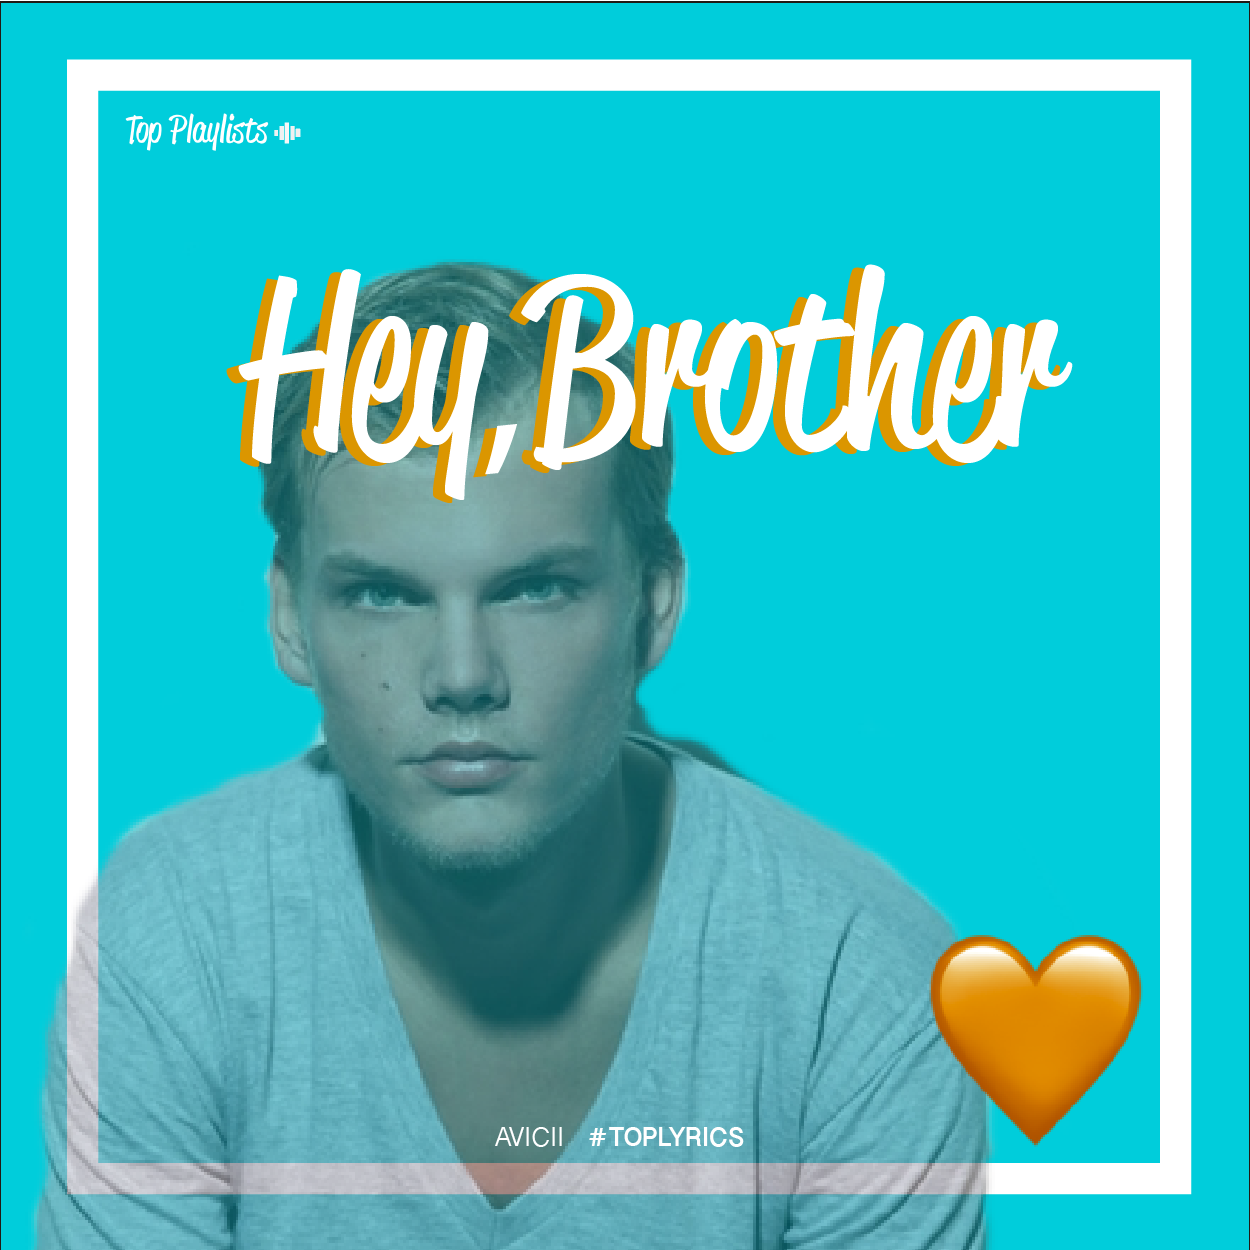 HEY BROTHER-01